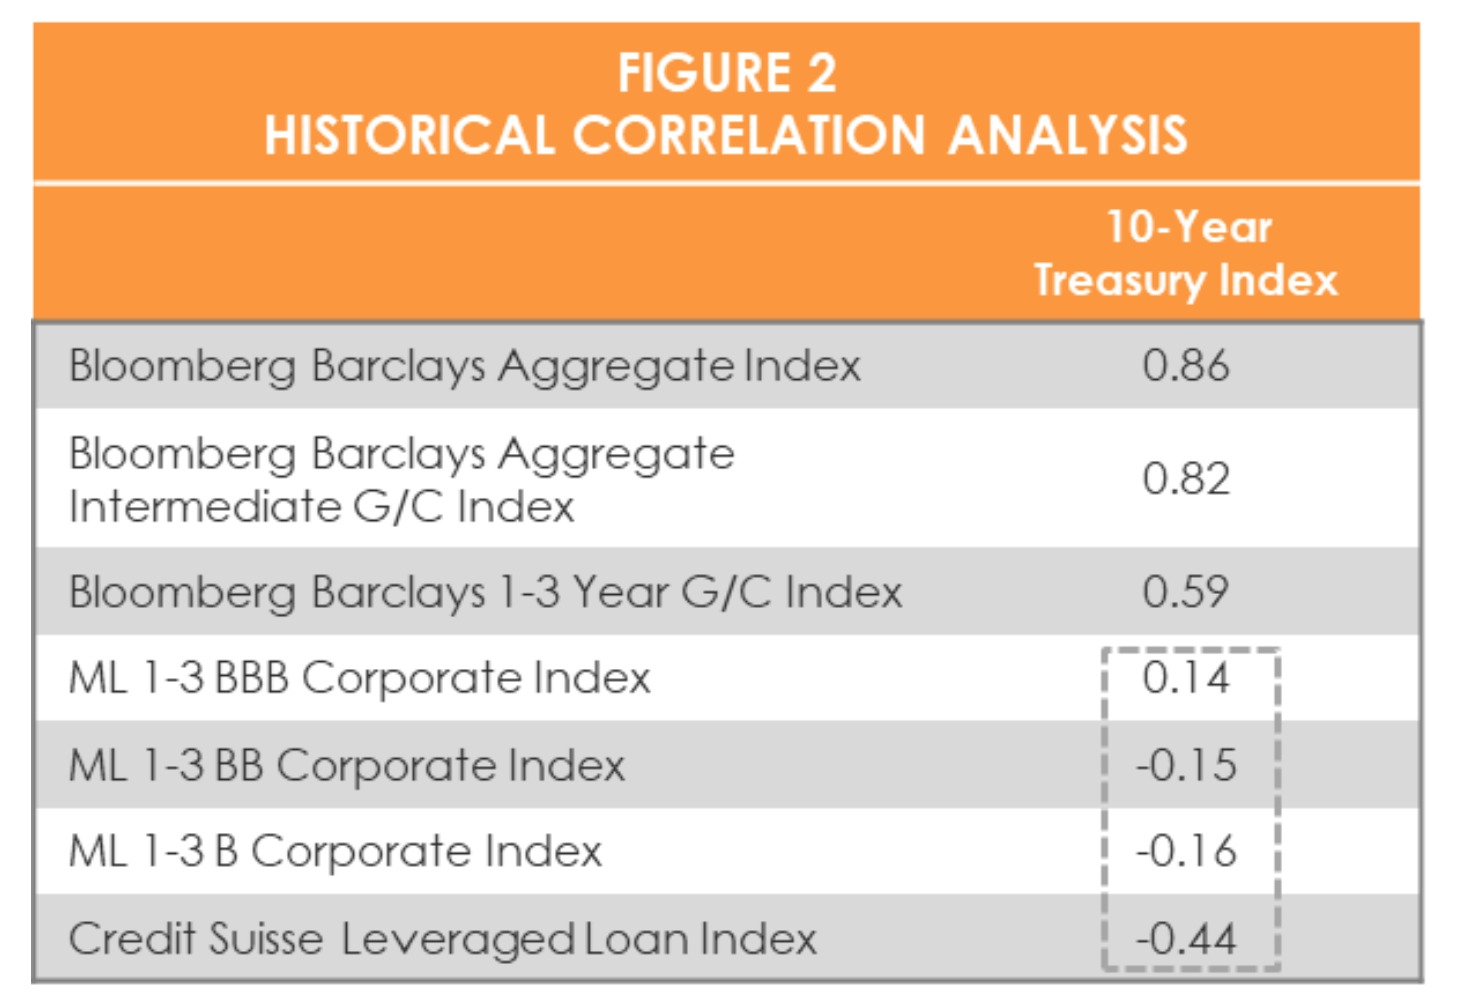 Source: Merrill Lynch, Credit Suisse and Bloomberg Barclays Indices. 10 years of data ended June 30, 2017. Note: Low to negatively correlated securities are ideal for diversification and therefore superior.